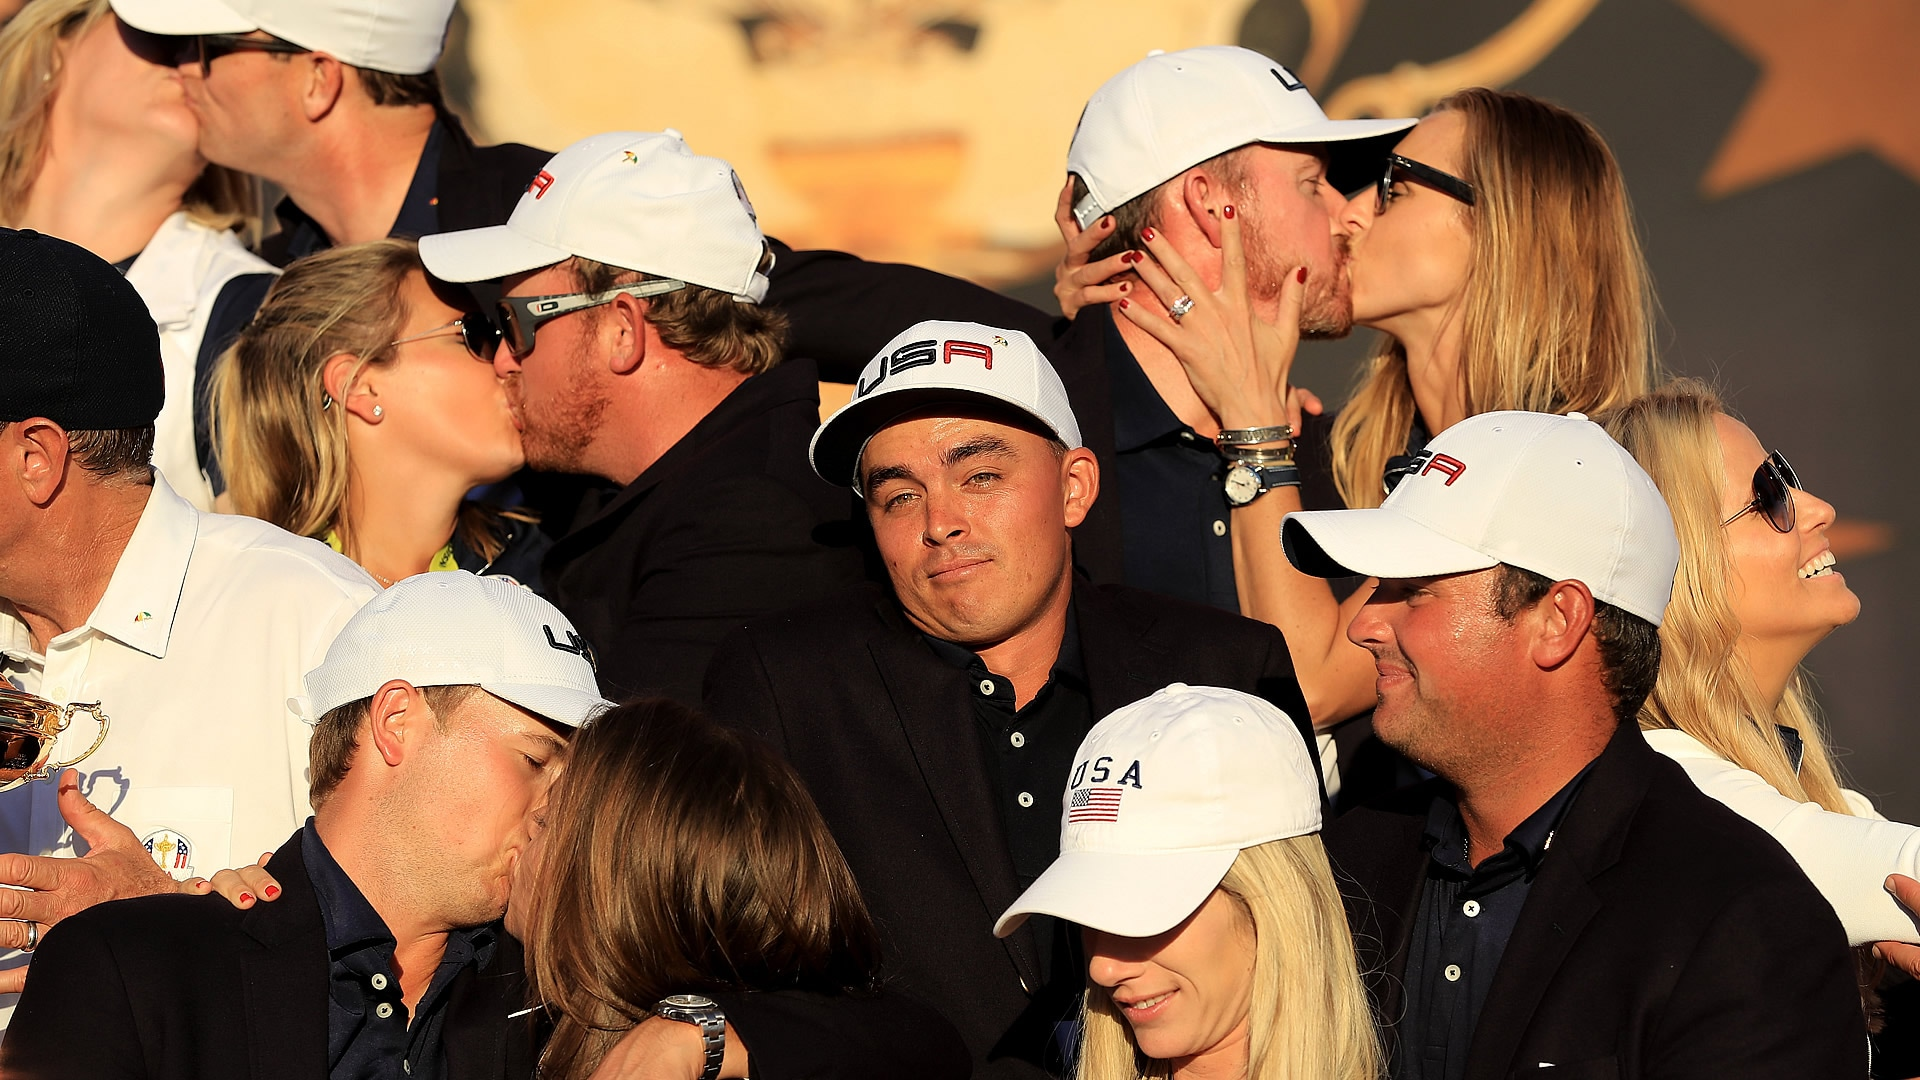 Poor Rickie -- no kiss!